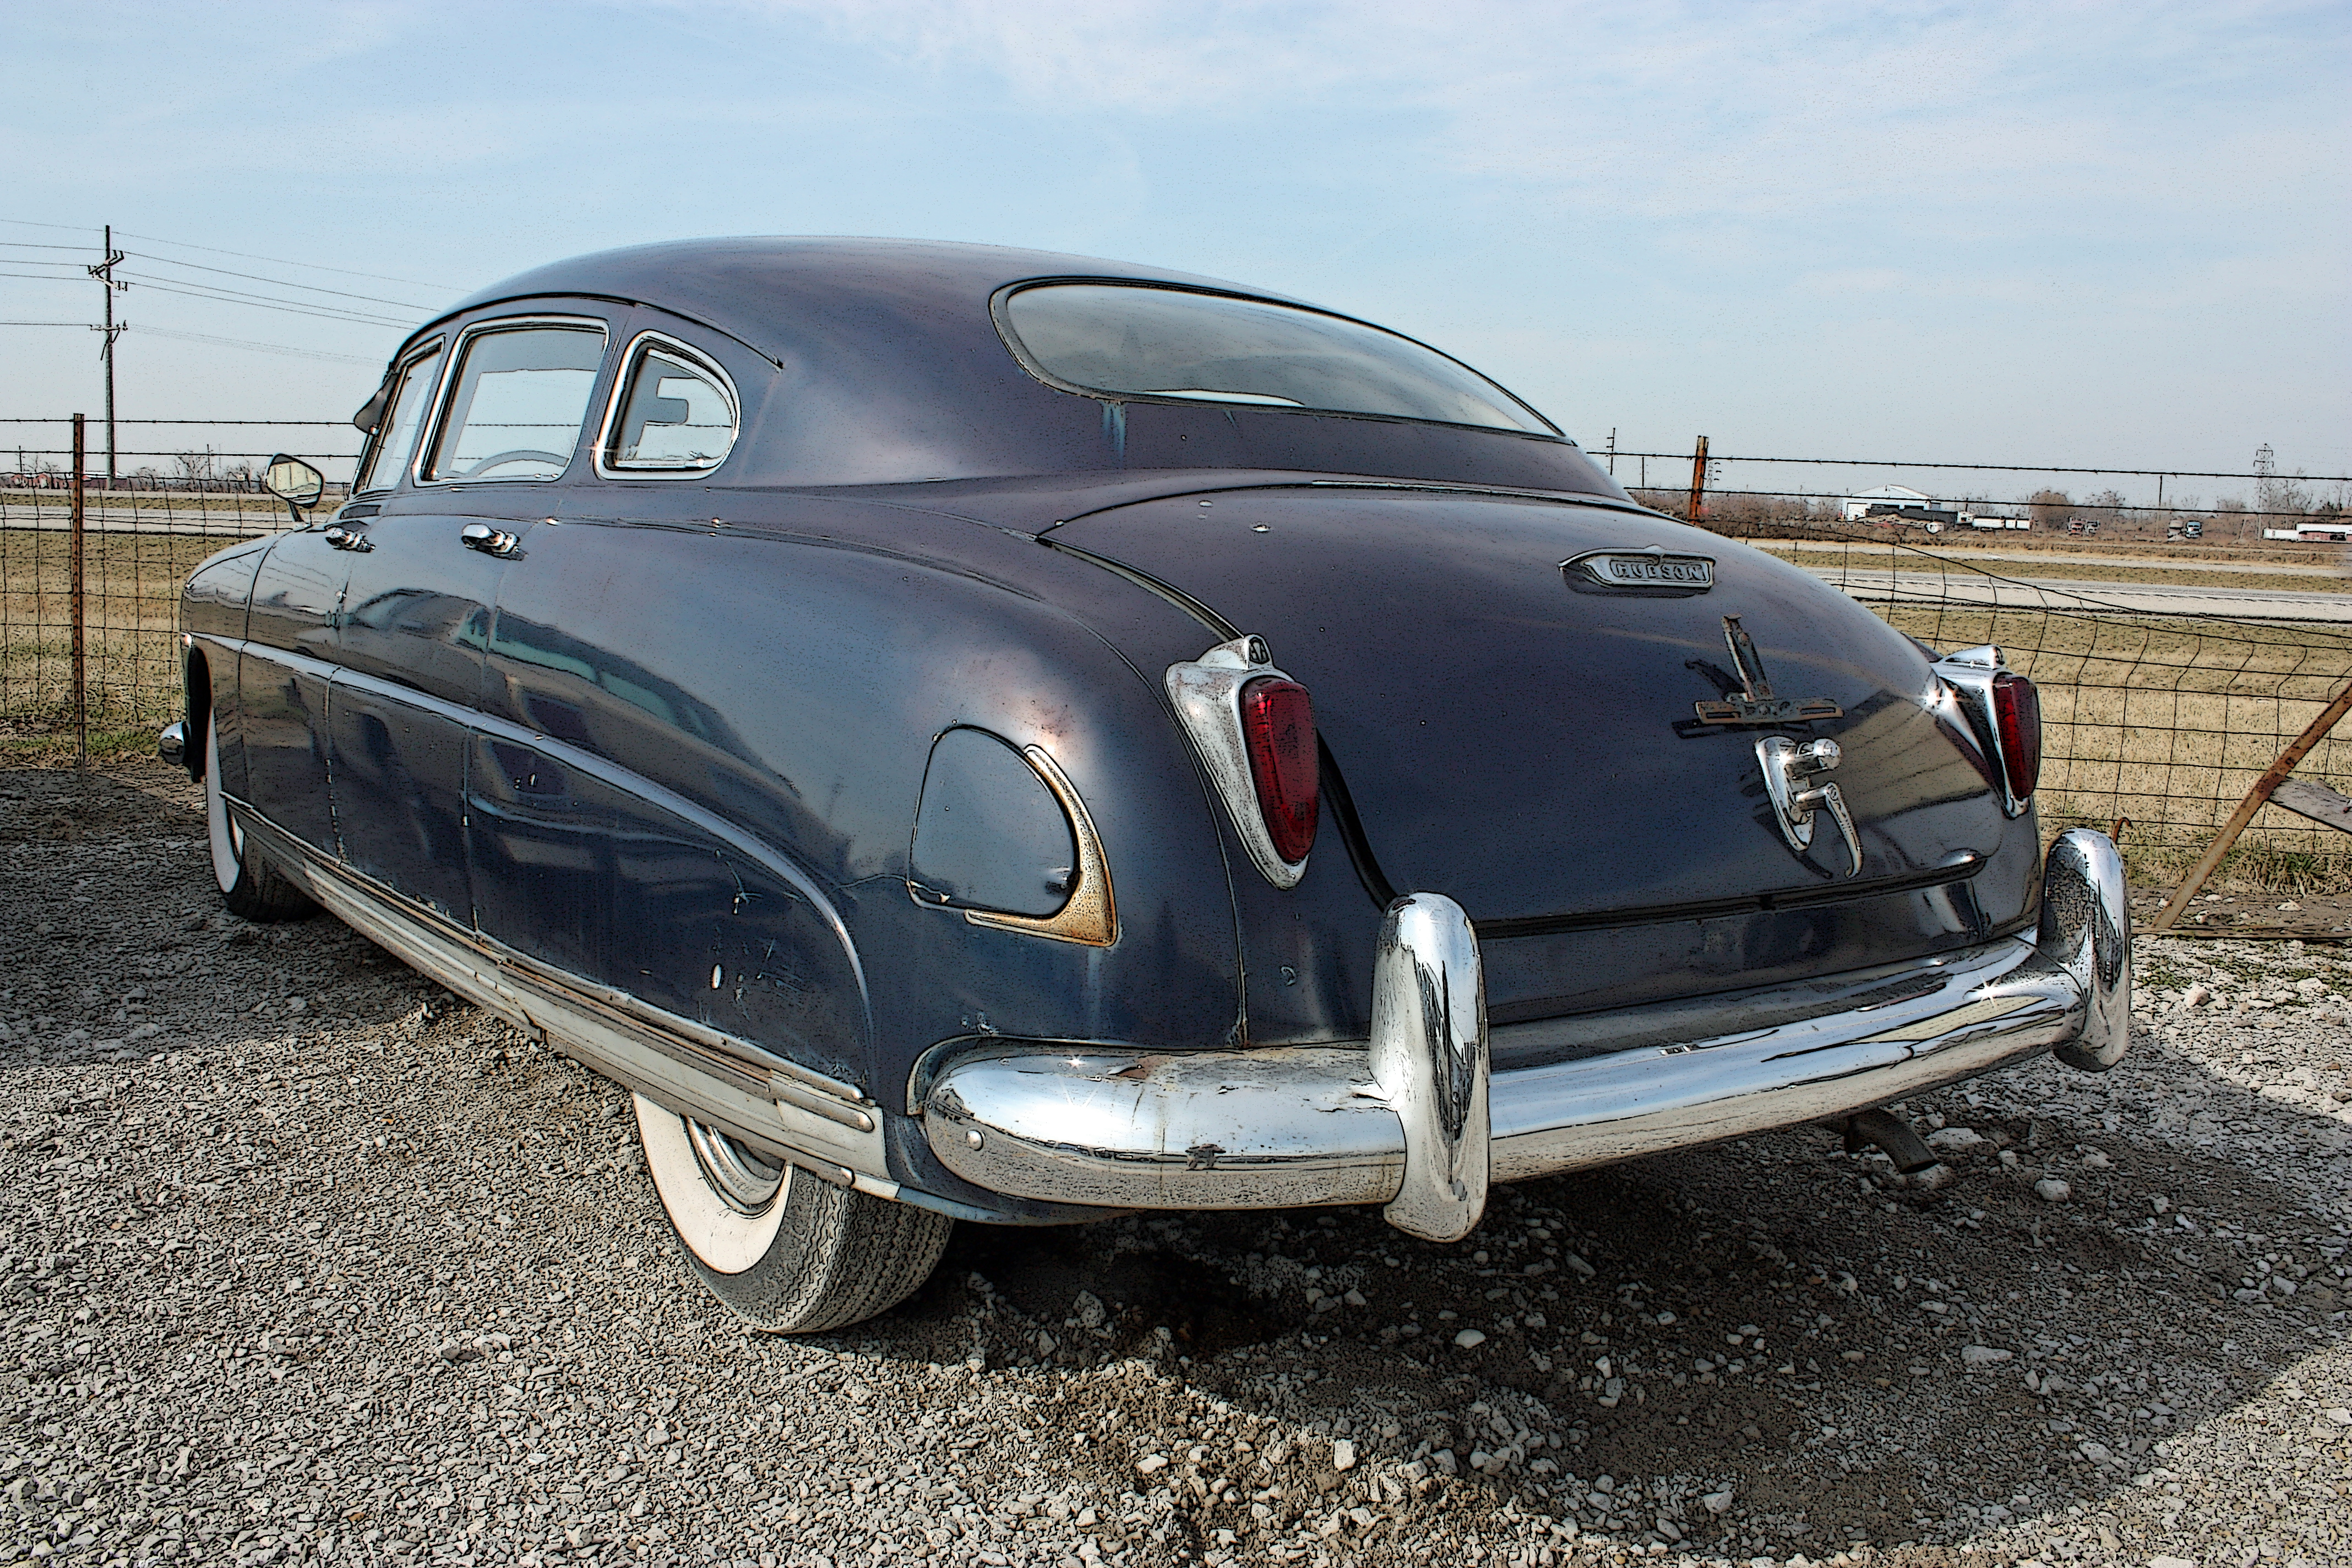 1949 Hudson Commodore Eight Sedan (7 of 7) | Flickr - Photo Sharing!